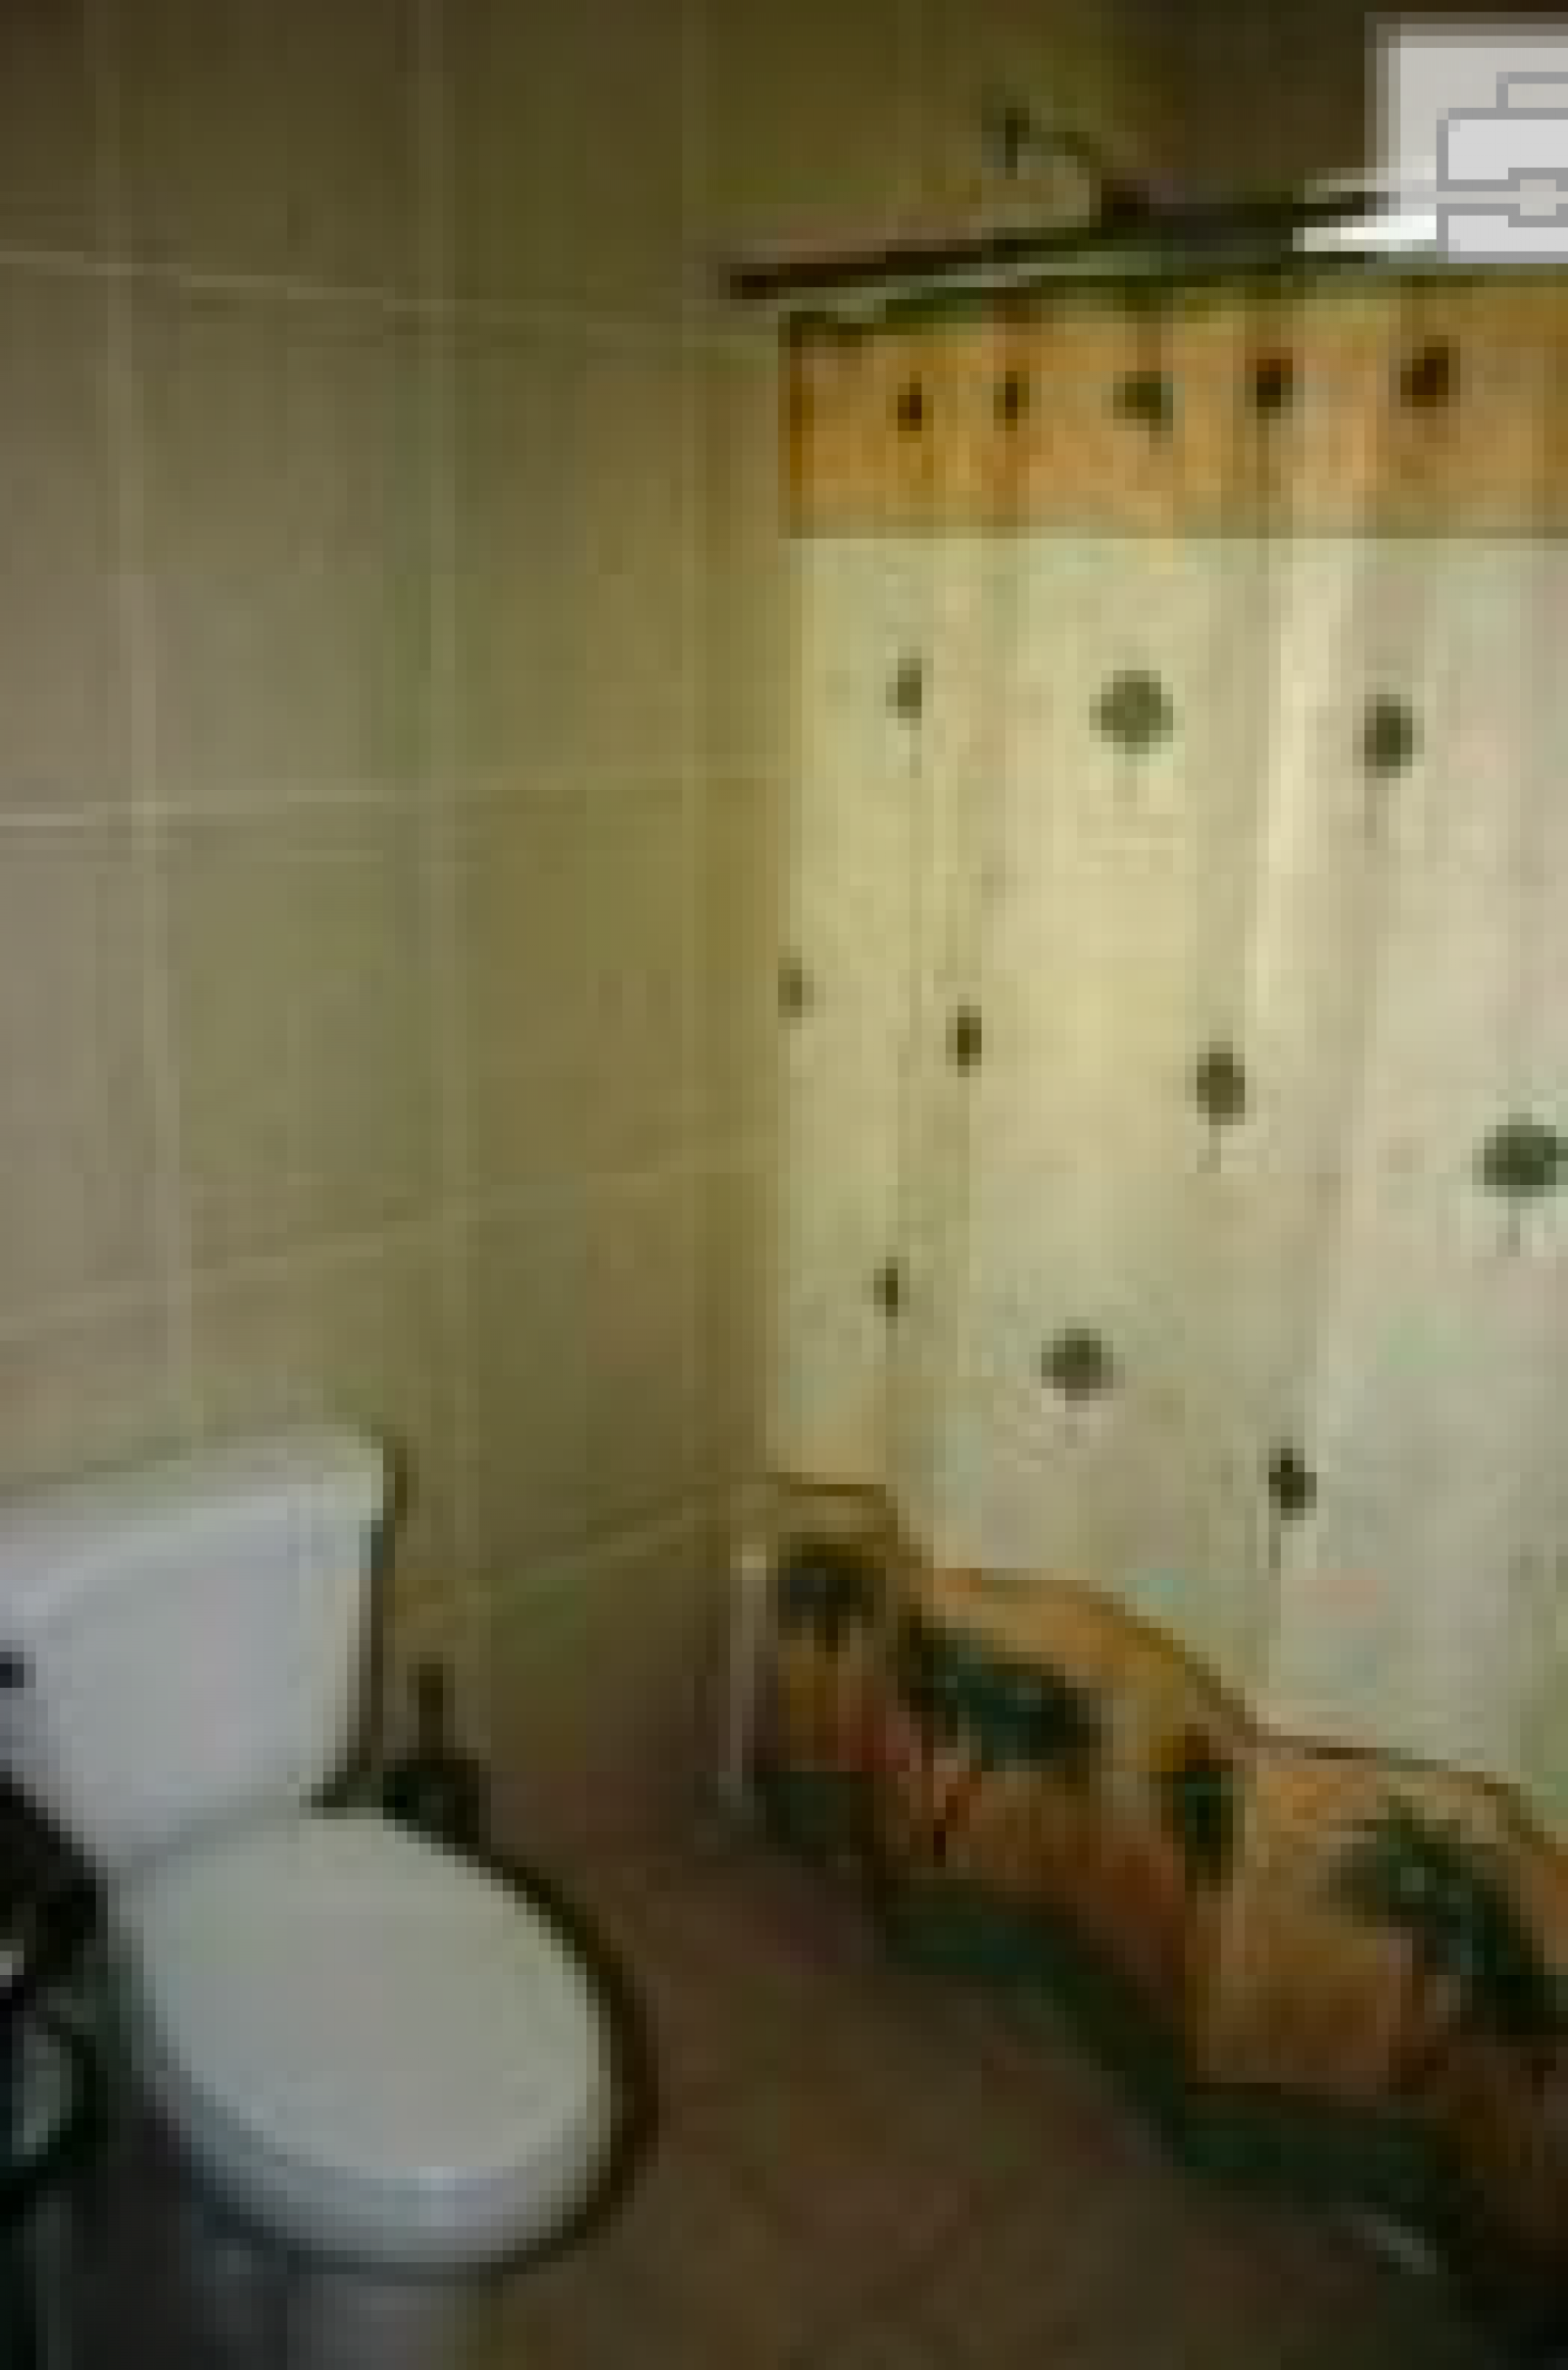 Ensuite bathrooms for both bedrooms.